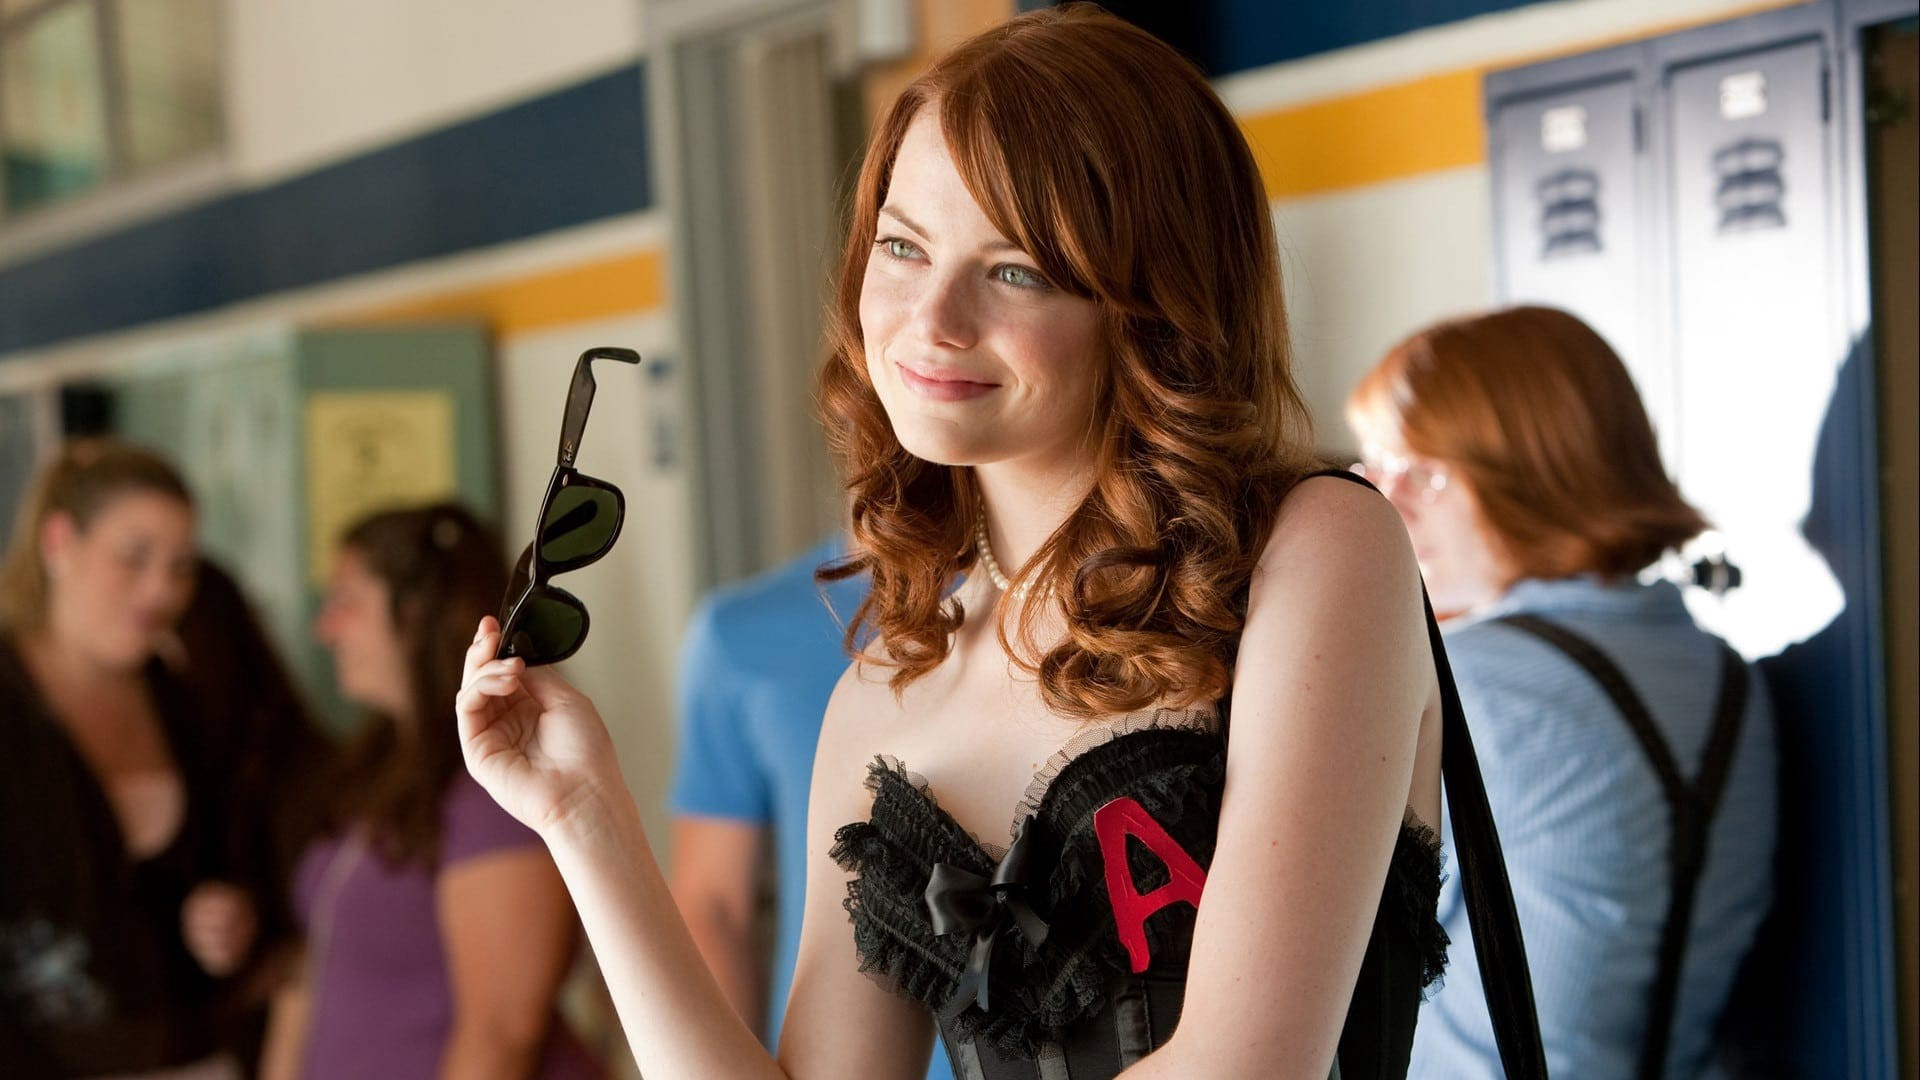 easy a movie online free full movie